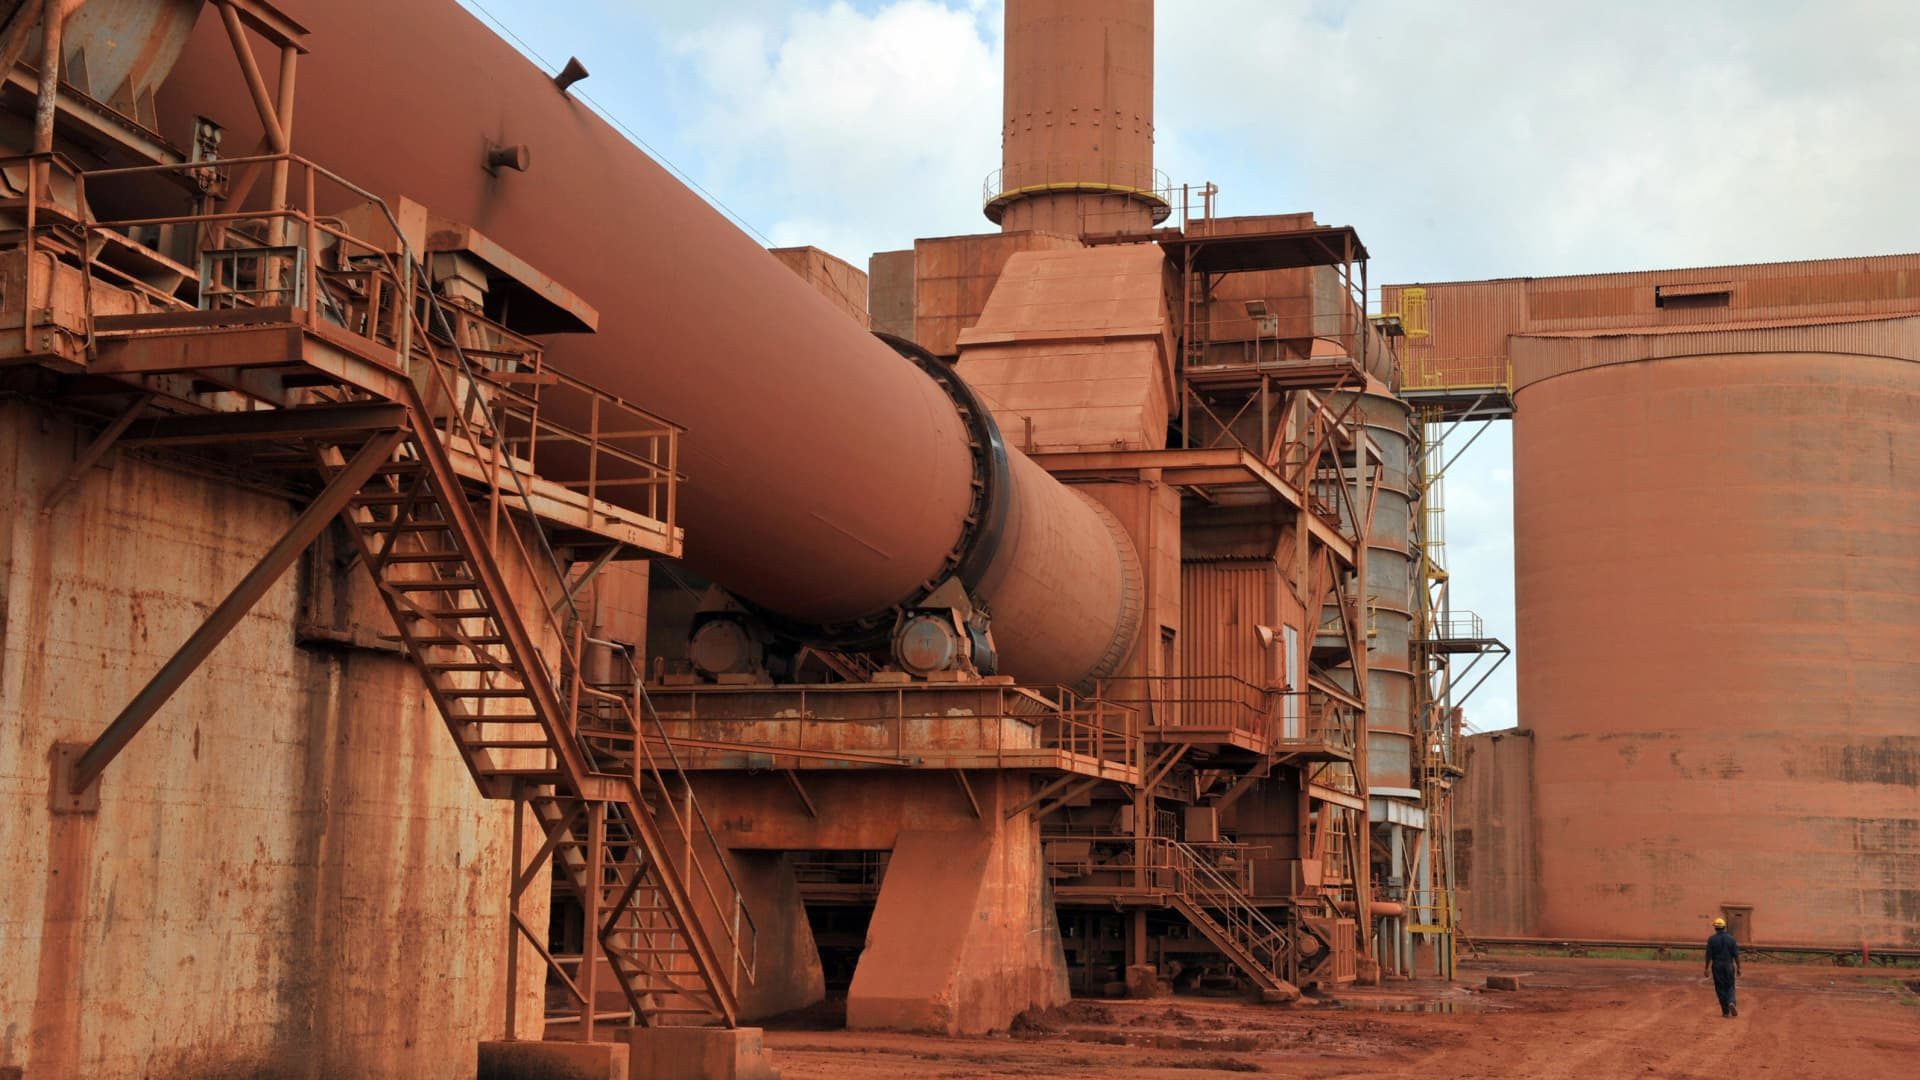 KAMSAR, Guinea - View of the bauxite factory of Guinea's largest mining firm, Compagnie des Bauxites de Guinee (CBG), at Kamsar, a town north of the capital Conakry, taken on October 23, 2008. Guinea is the world's leading exporter of bauxite, an ore from which aluminium is produced.